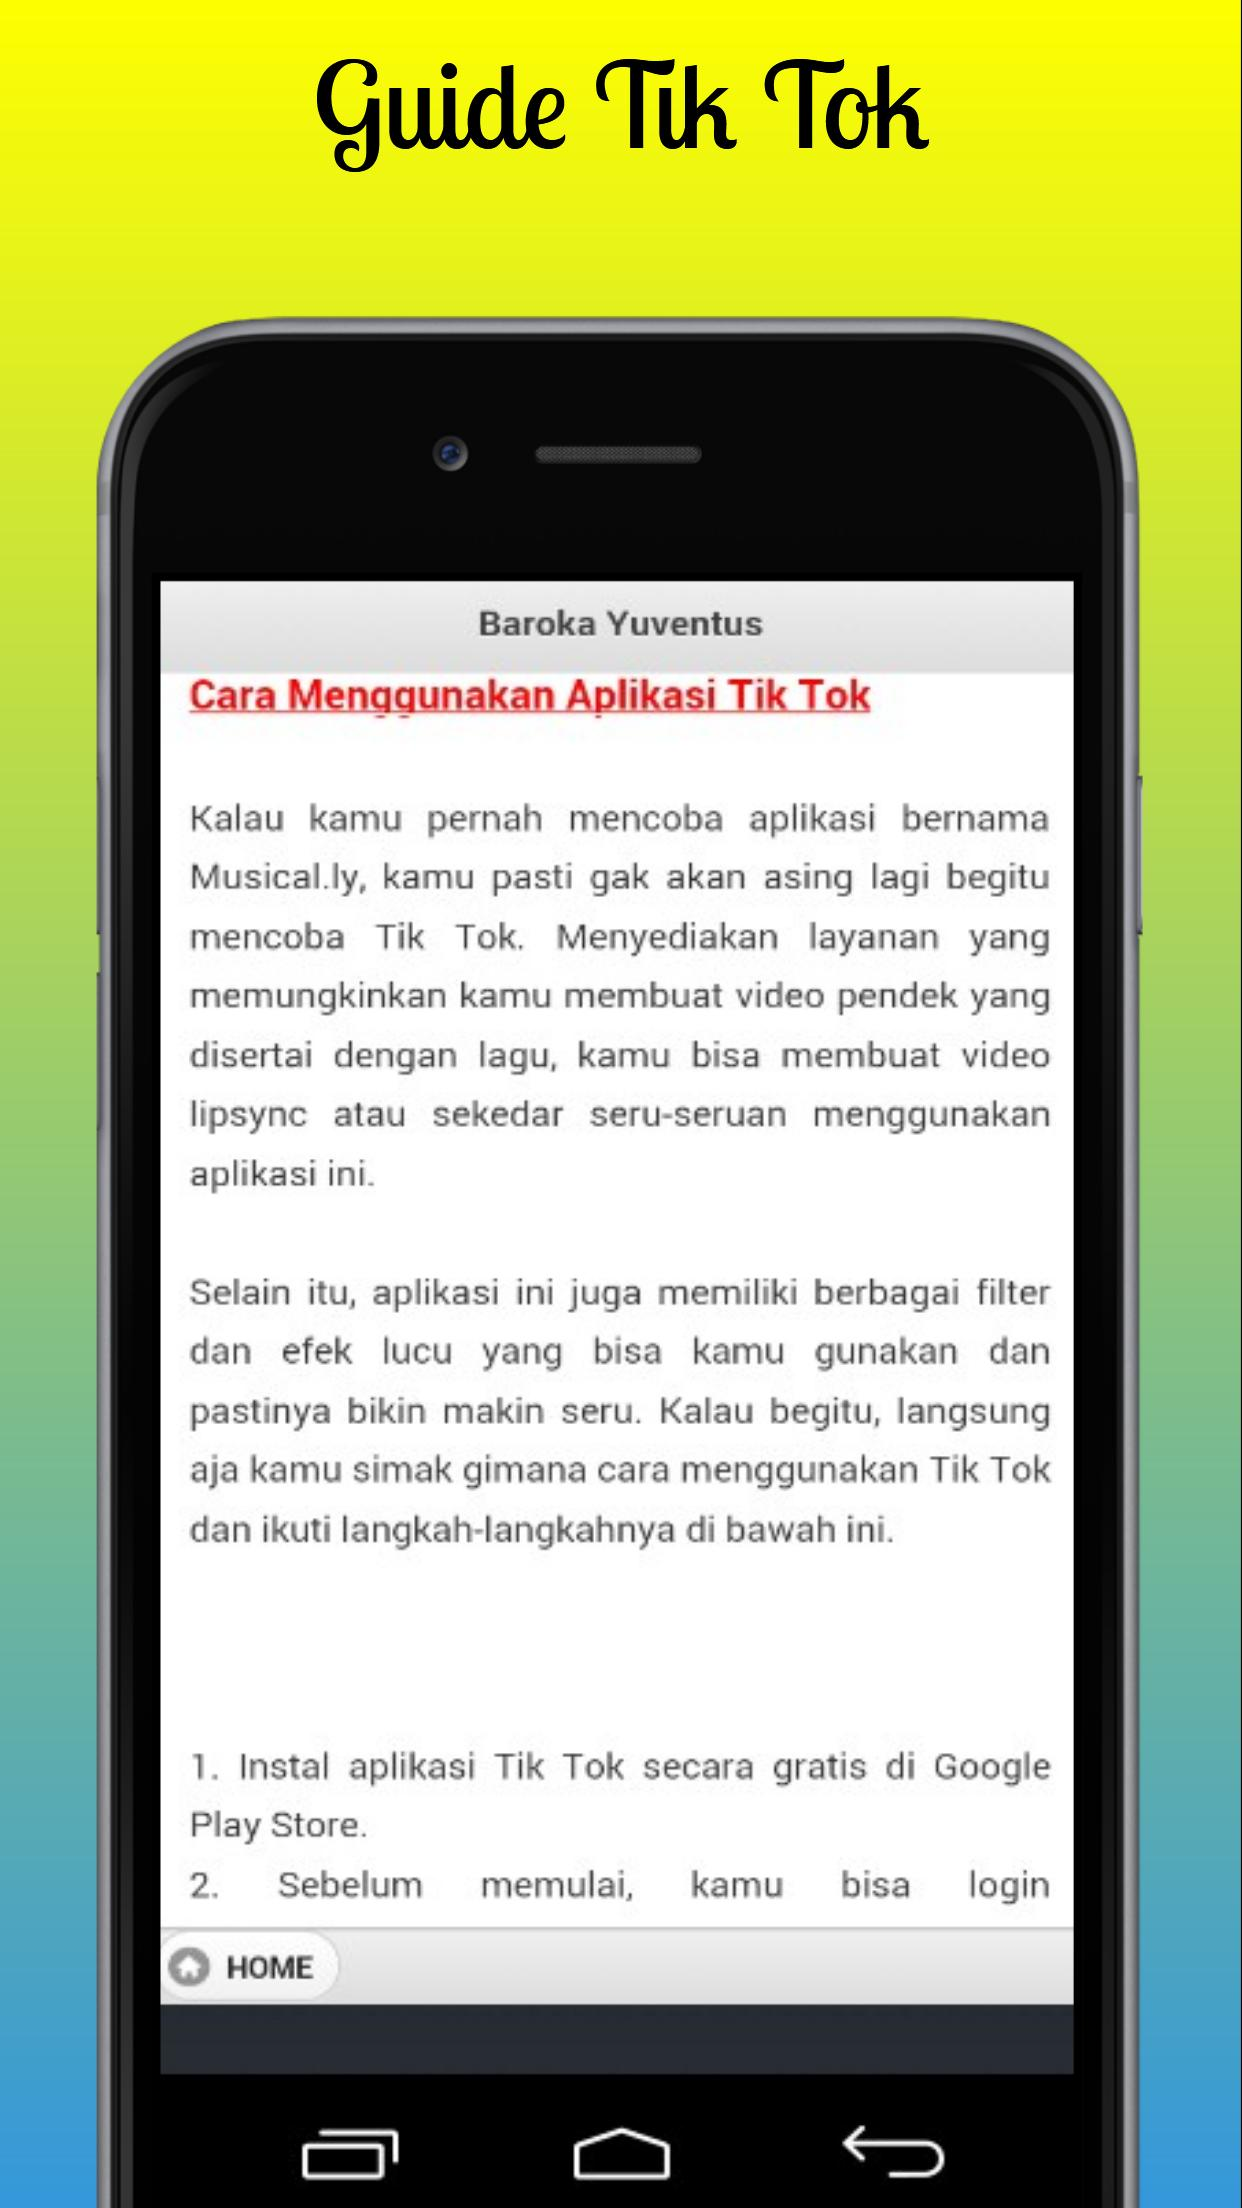 Guide Tik Tok for Android - APK Download